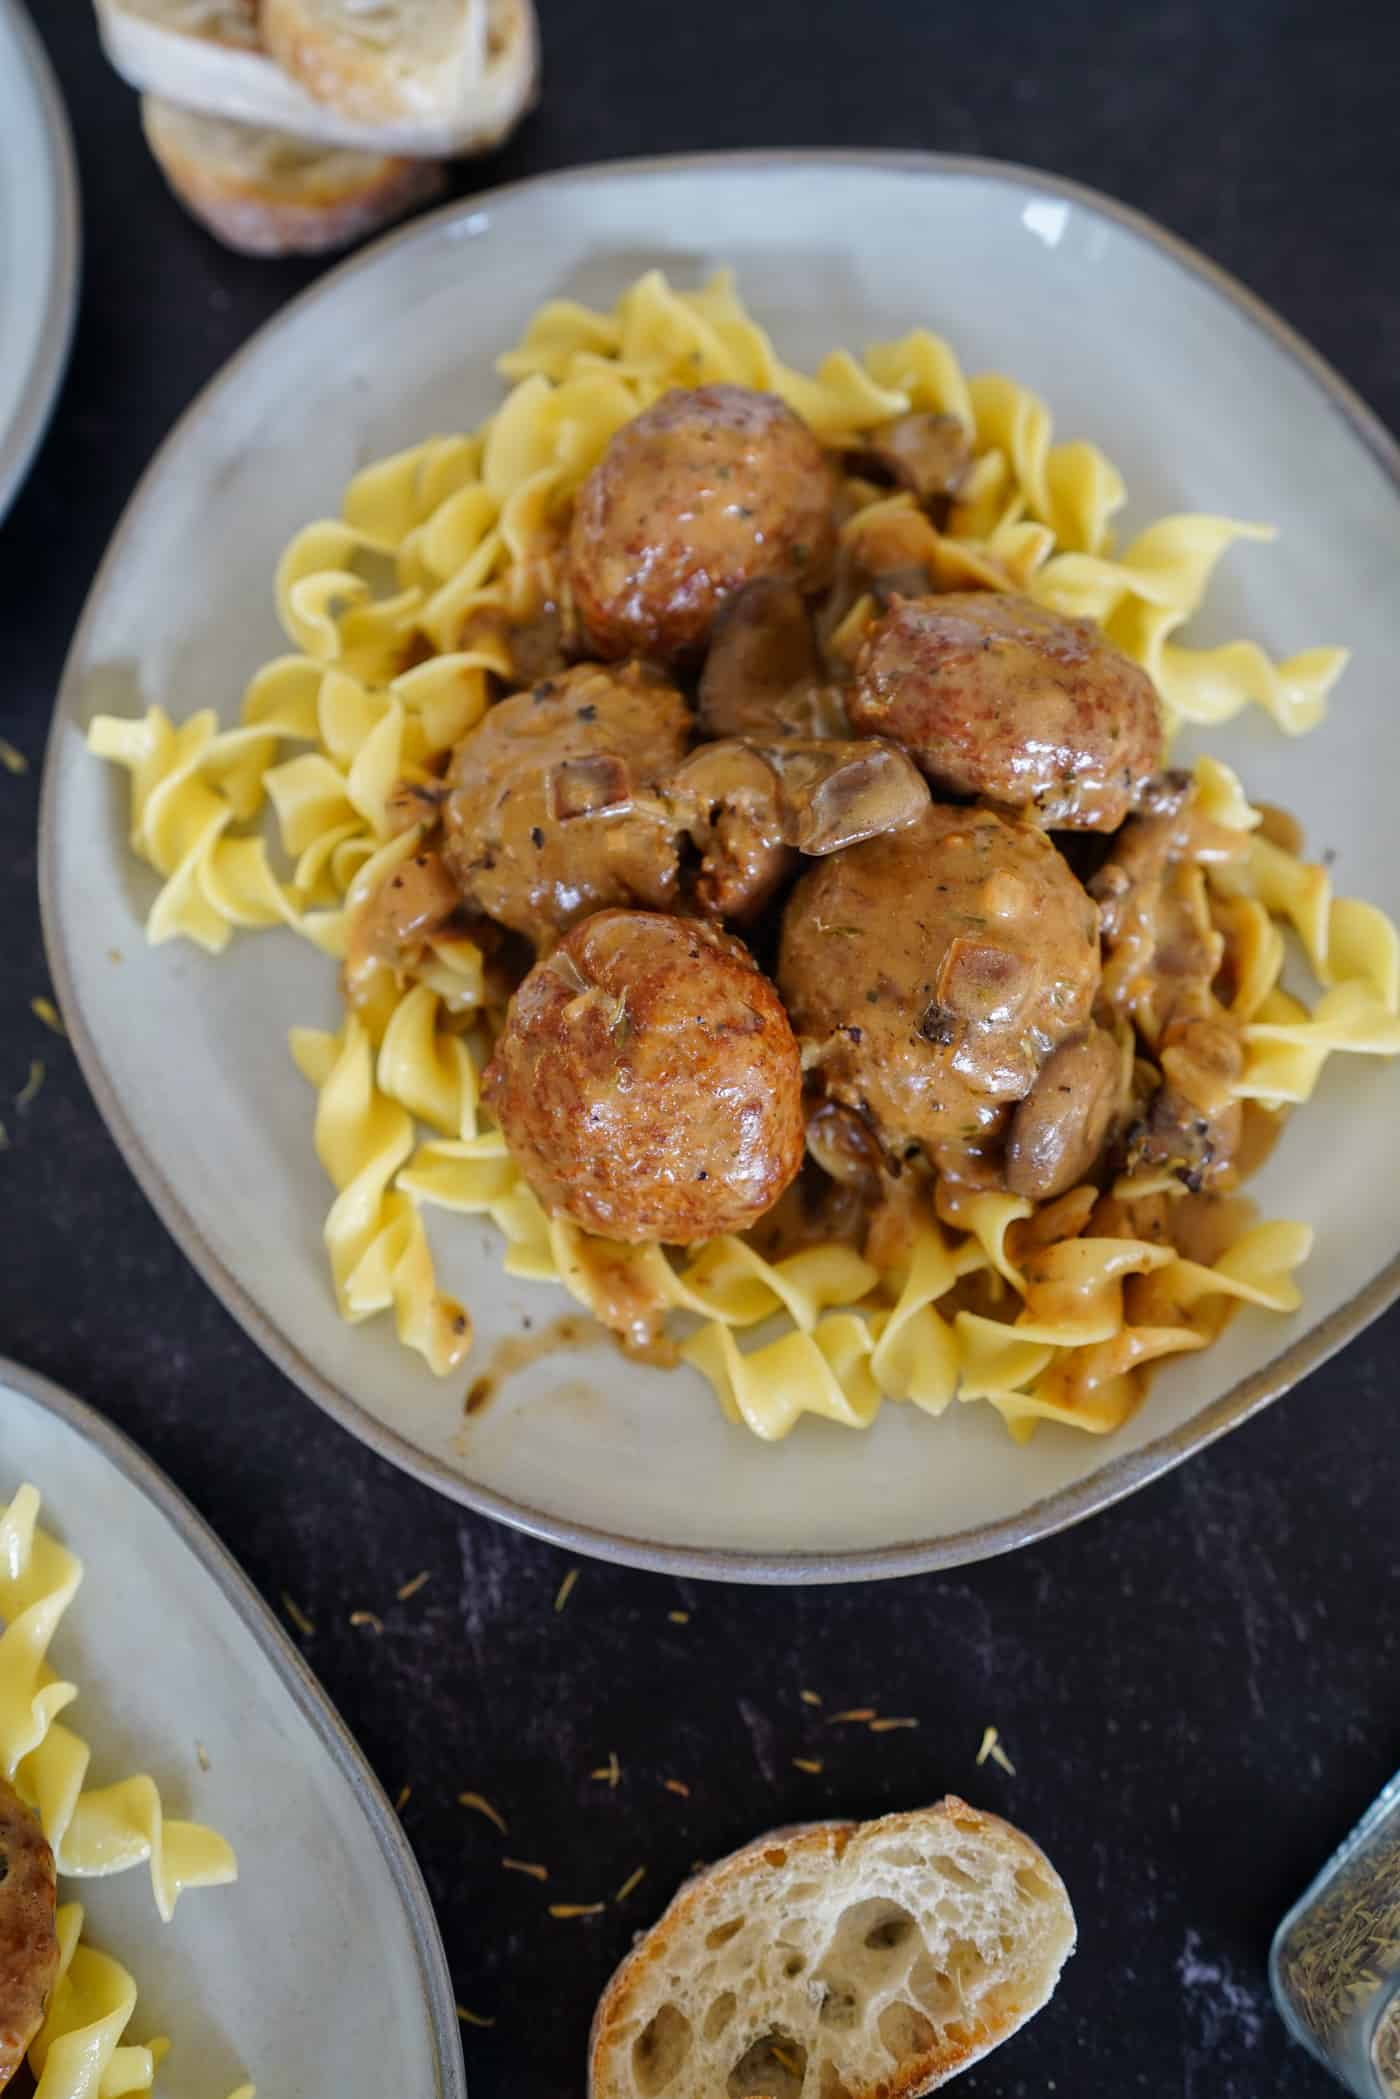 A large plate of meatball stroganoff with mushroom gravy served over egg noodles